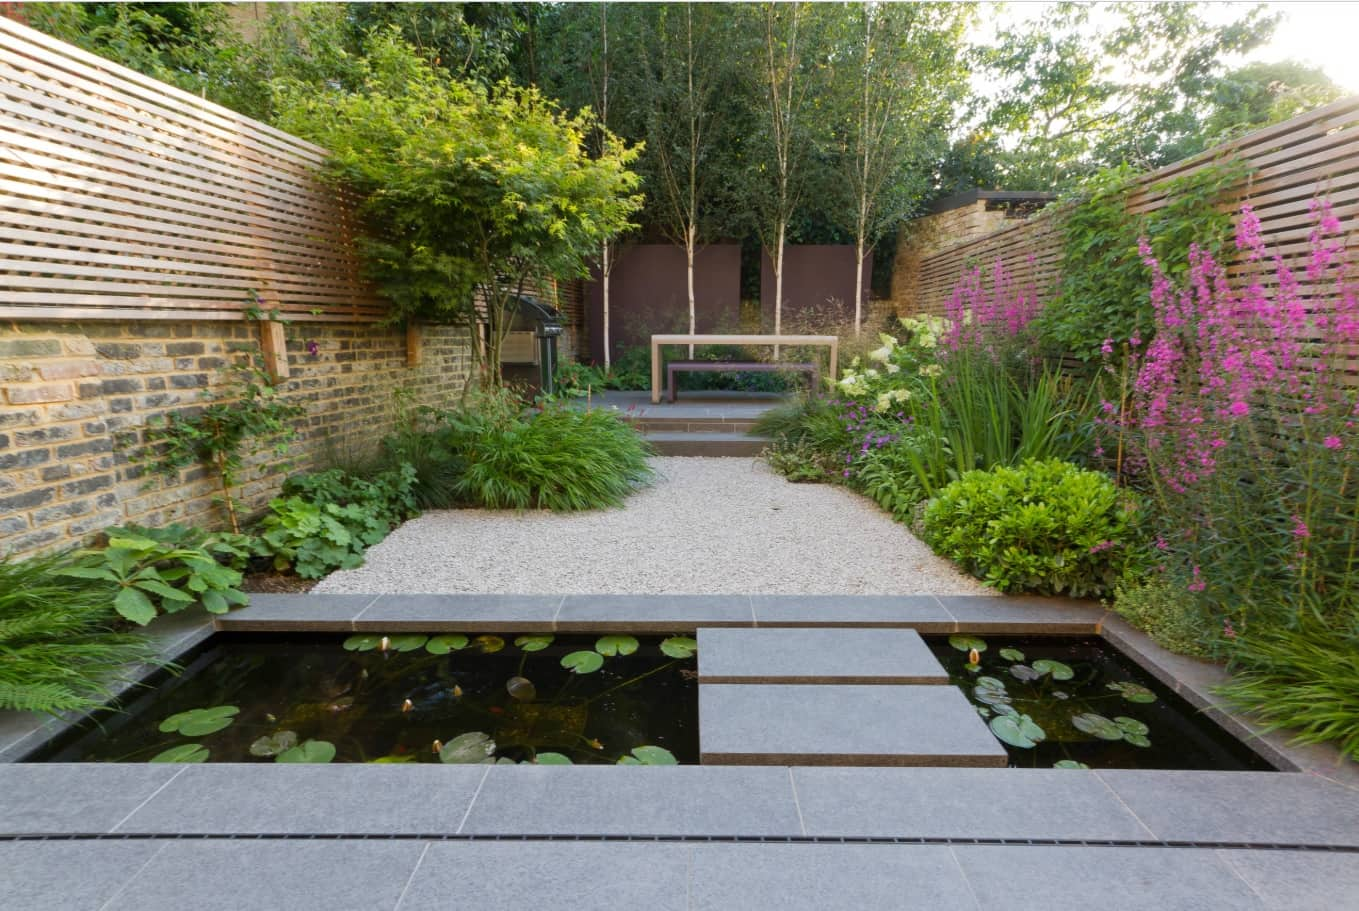 How to Use Outdoor Space Effectively. Artificial pond and blossoming plants